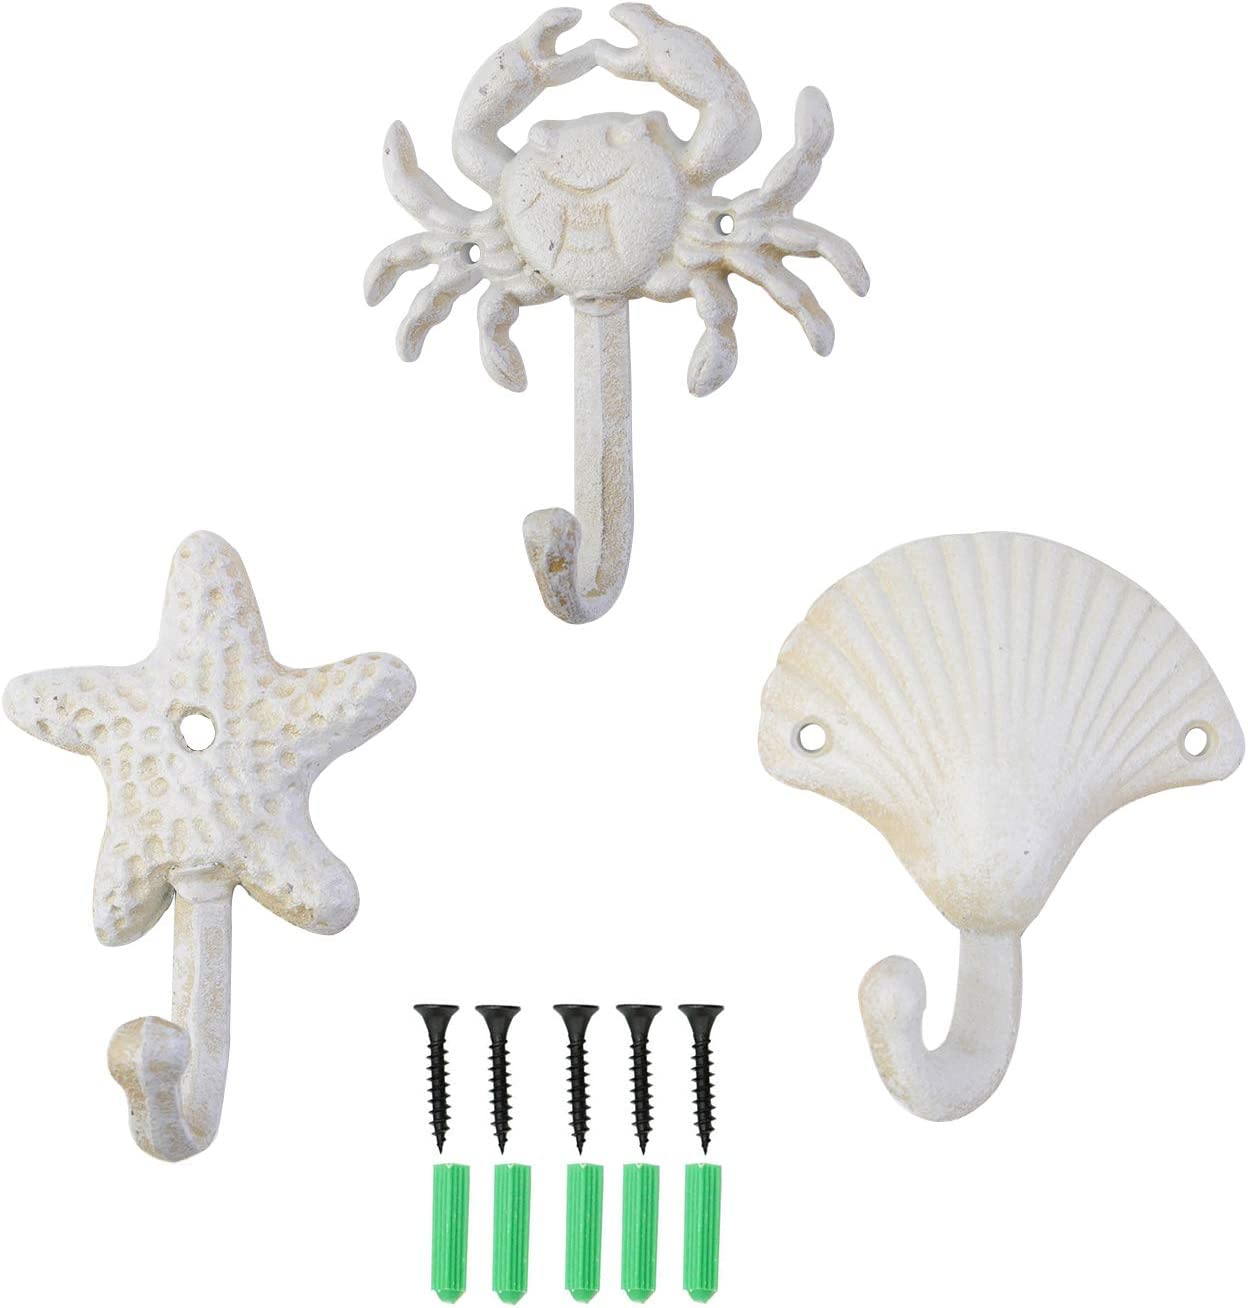 ZILucky Set of 3 Starfish Seashell Crab Cast Iron Decorative Wall Hooks Coats Aprons Hats Towels Hooks Beach Ocean Theme Chic Metal Hooks (White)